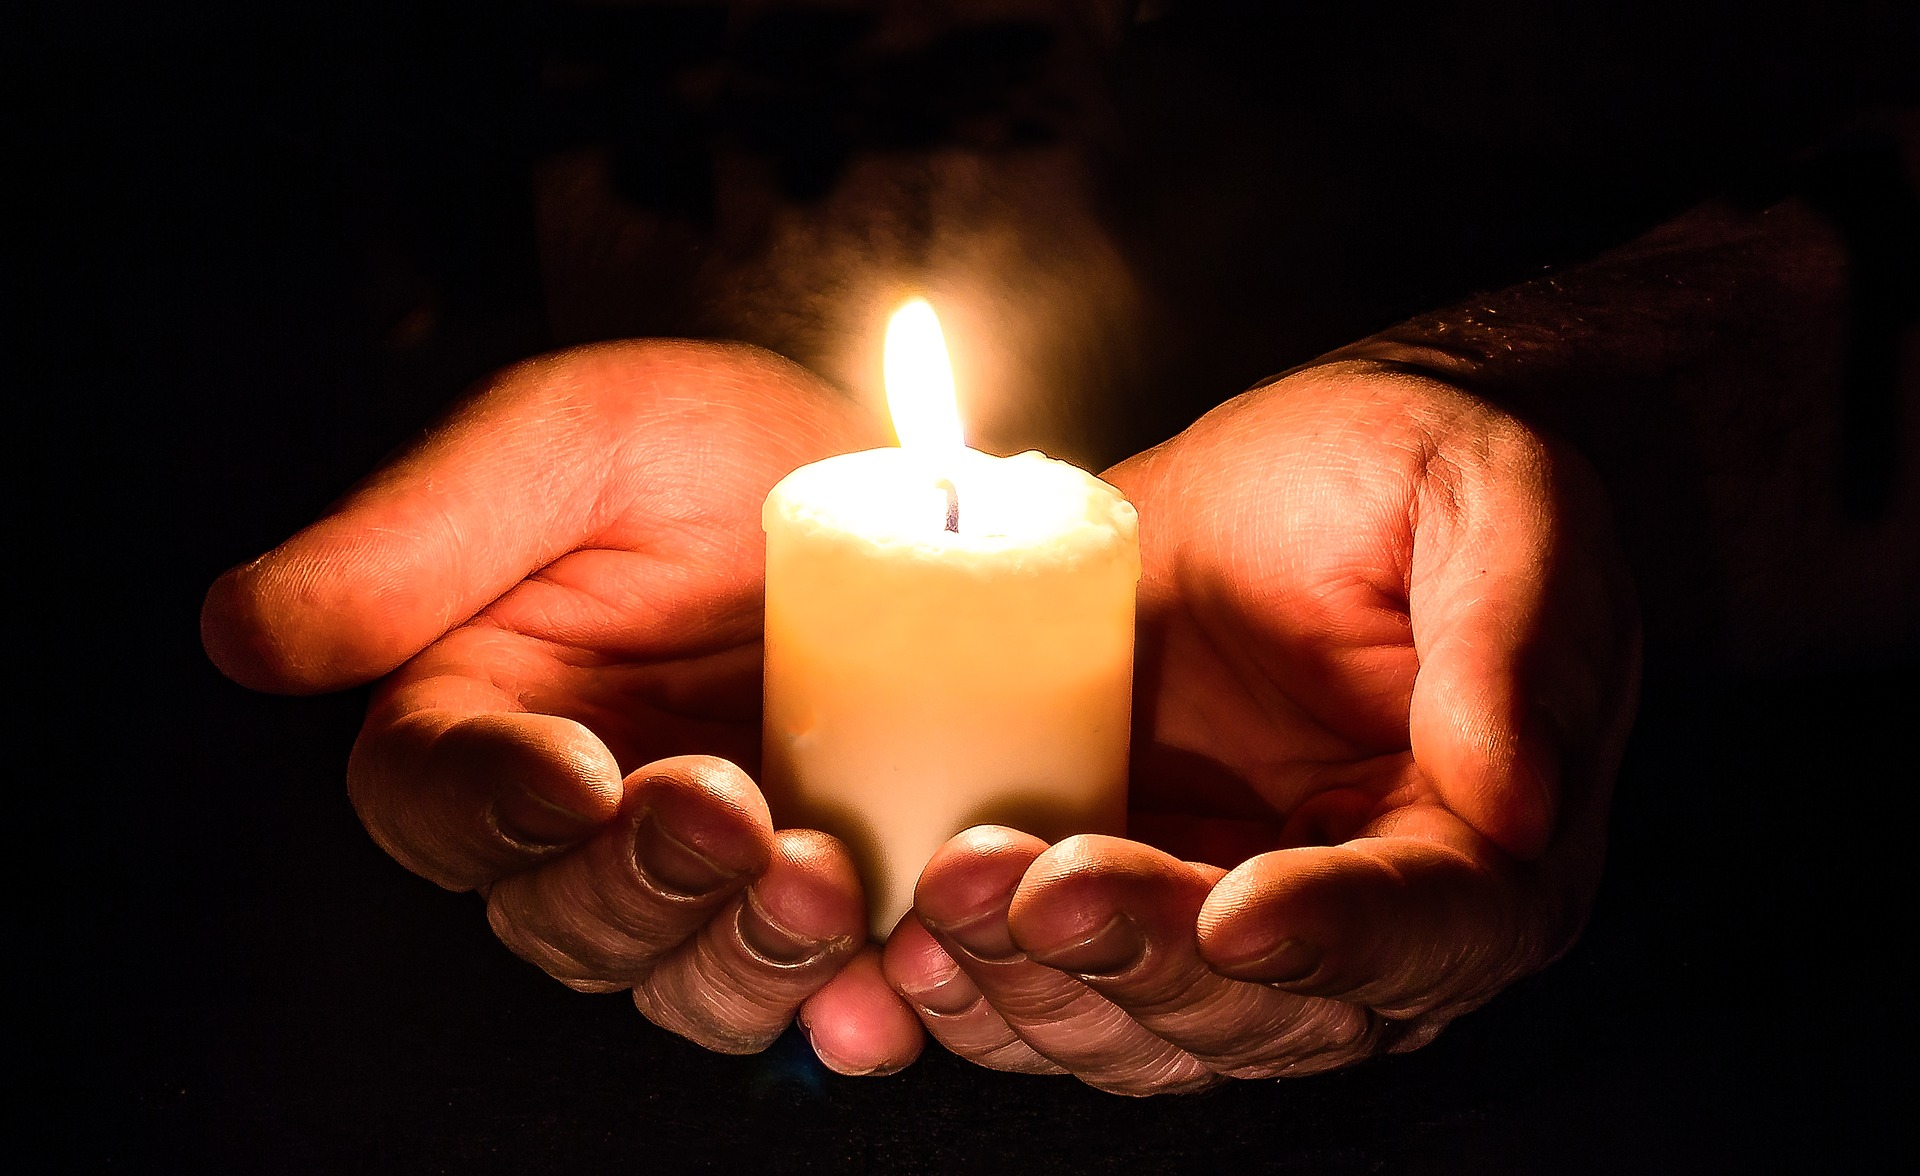 Hands with a Candle